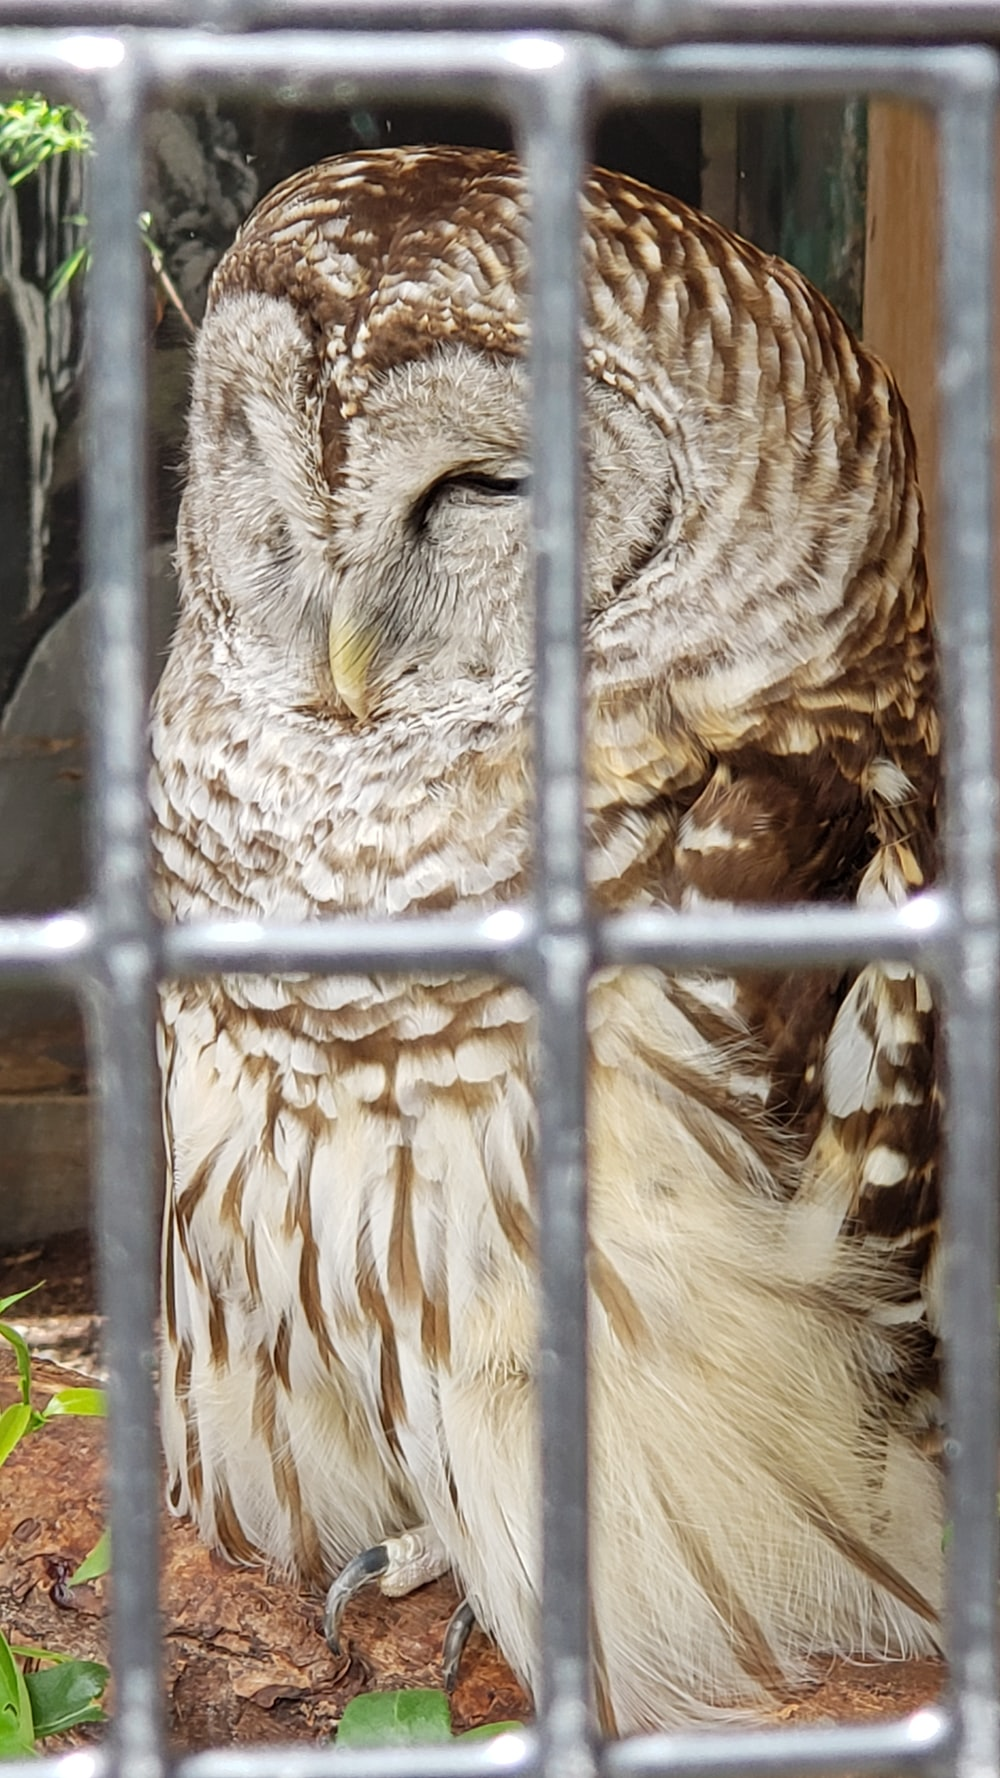 brown owl inside cage '